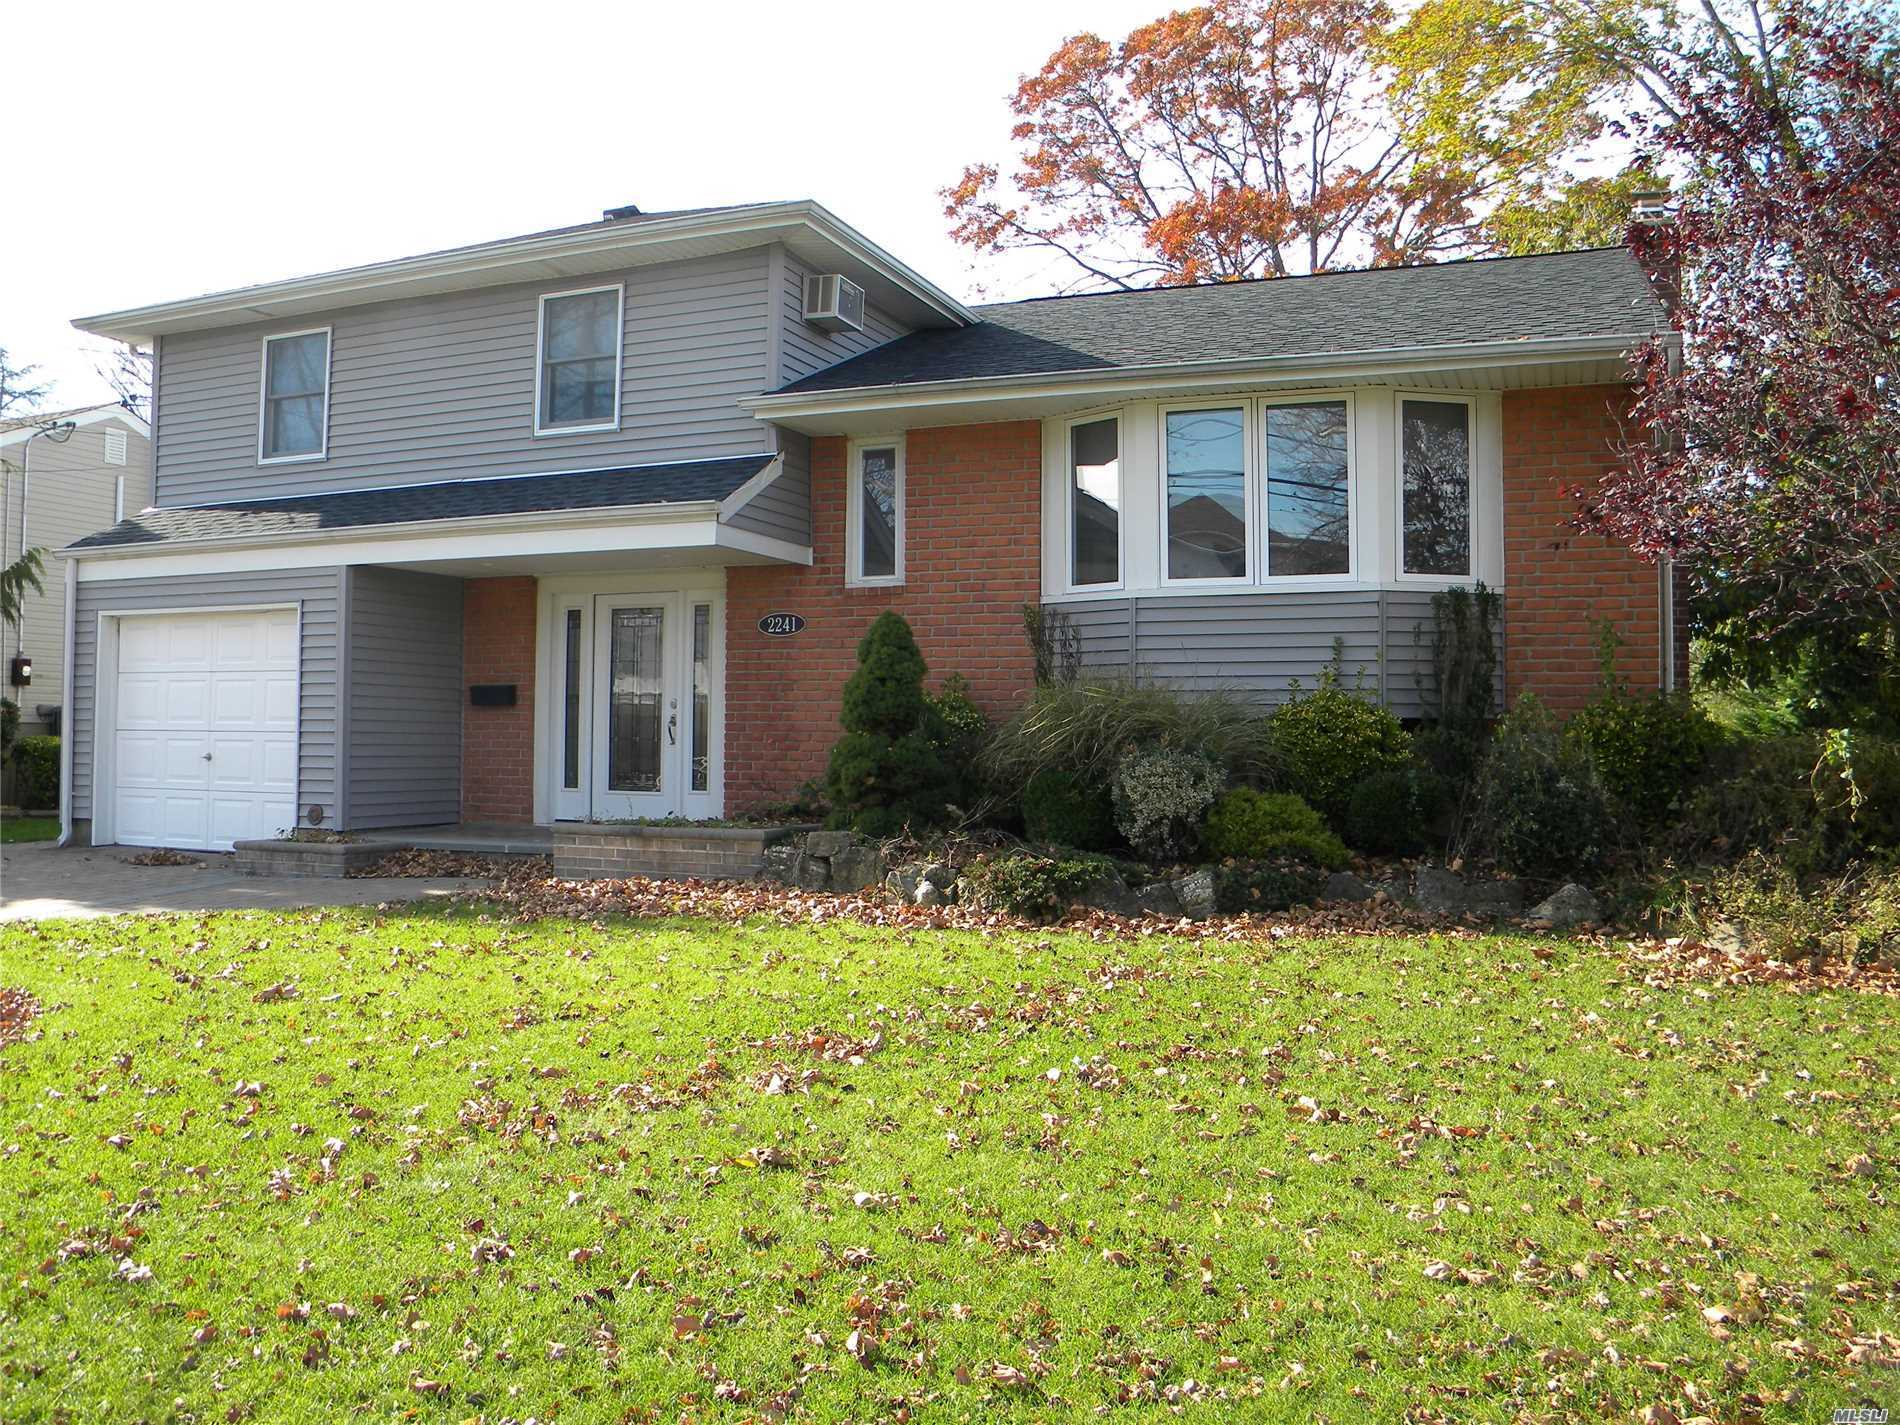 Beautiful Location! Flood Zone X.....Split Level Home With Large Great Room W/New Windows, Walls, Floors & 1/2 Bath. Mudroom Or Office.. Eik W/Ose To Deck, Fdr, Master W/Newish Fbth. Bsmt, Wood Floors, Paved Patio, Roof And Siding 8 Years Old, New Boiler & Washer/Dryer. Grievance Filed.